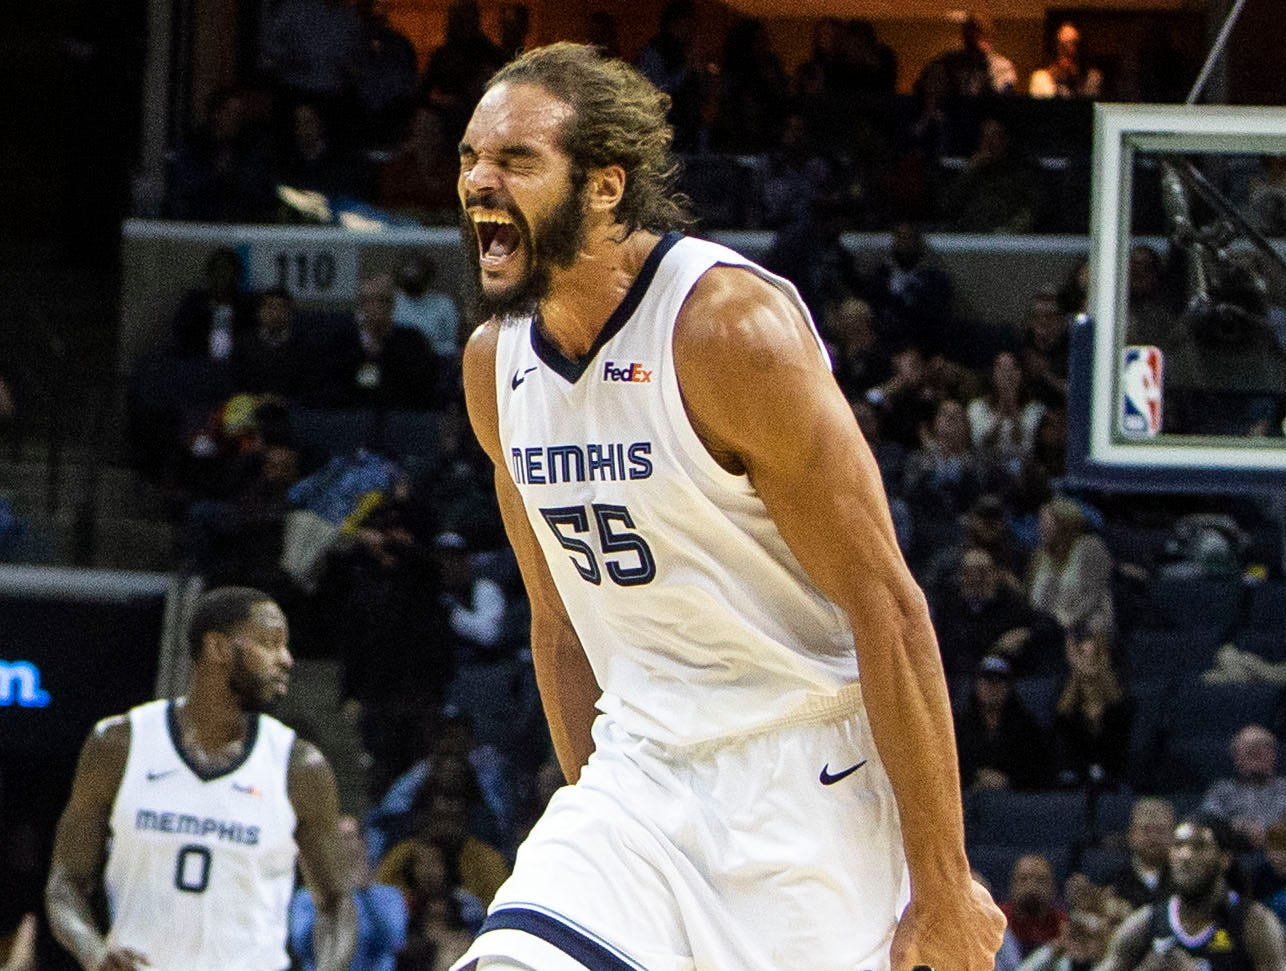 Memphis Grizzles center Joakim Noah (55) celebrates after a score during a NBA basketball game between the Memphis Grizzlies and the  Los Angeles Clippers in the Fedex Forum, Wednesday, Dec. 5, 2018.